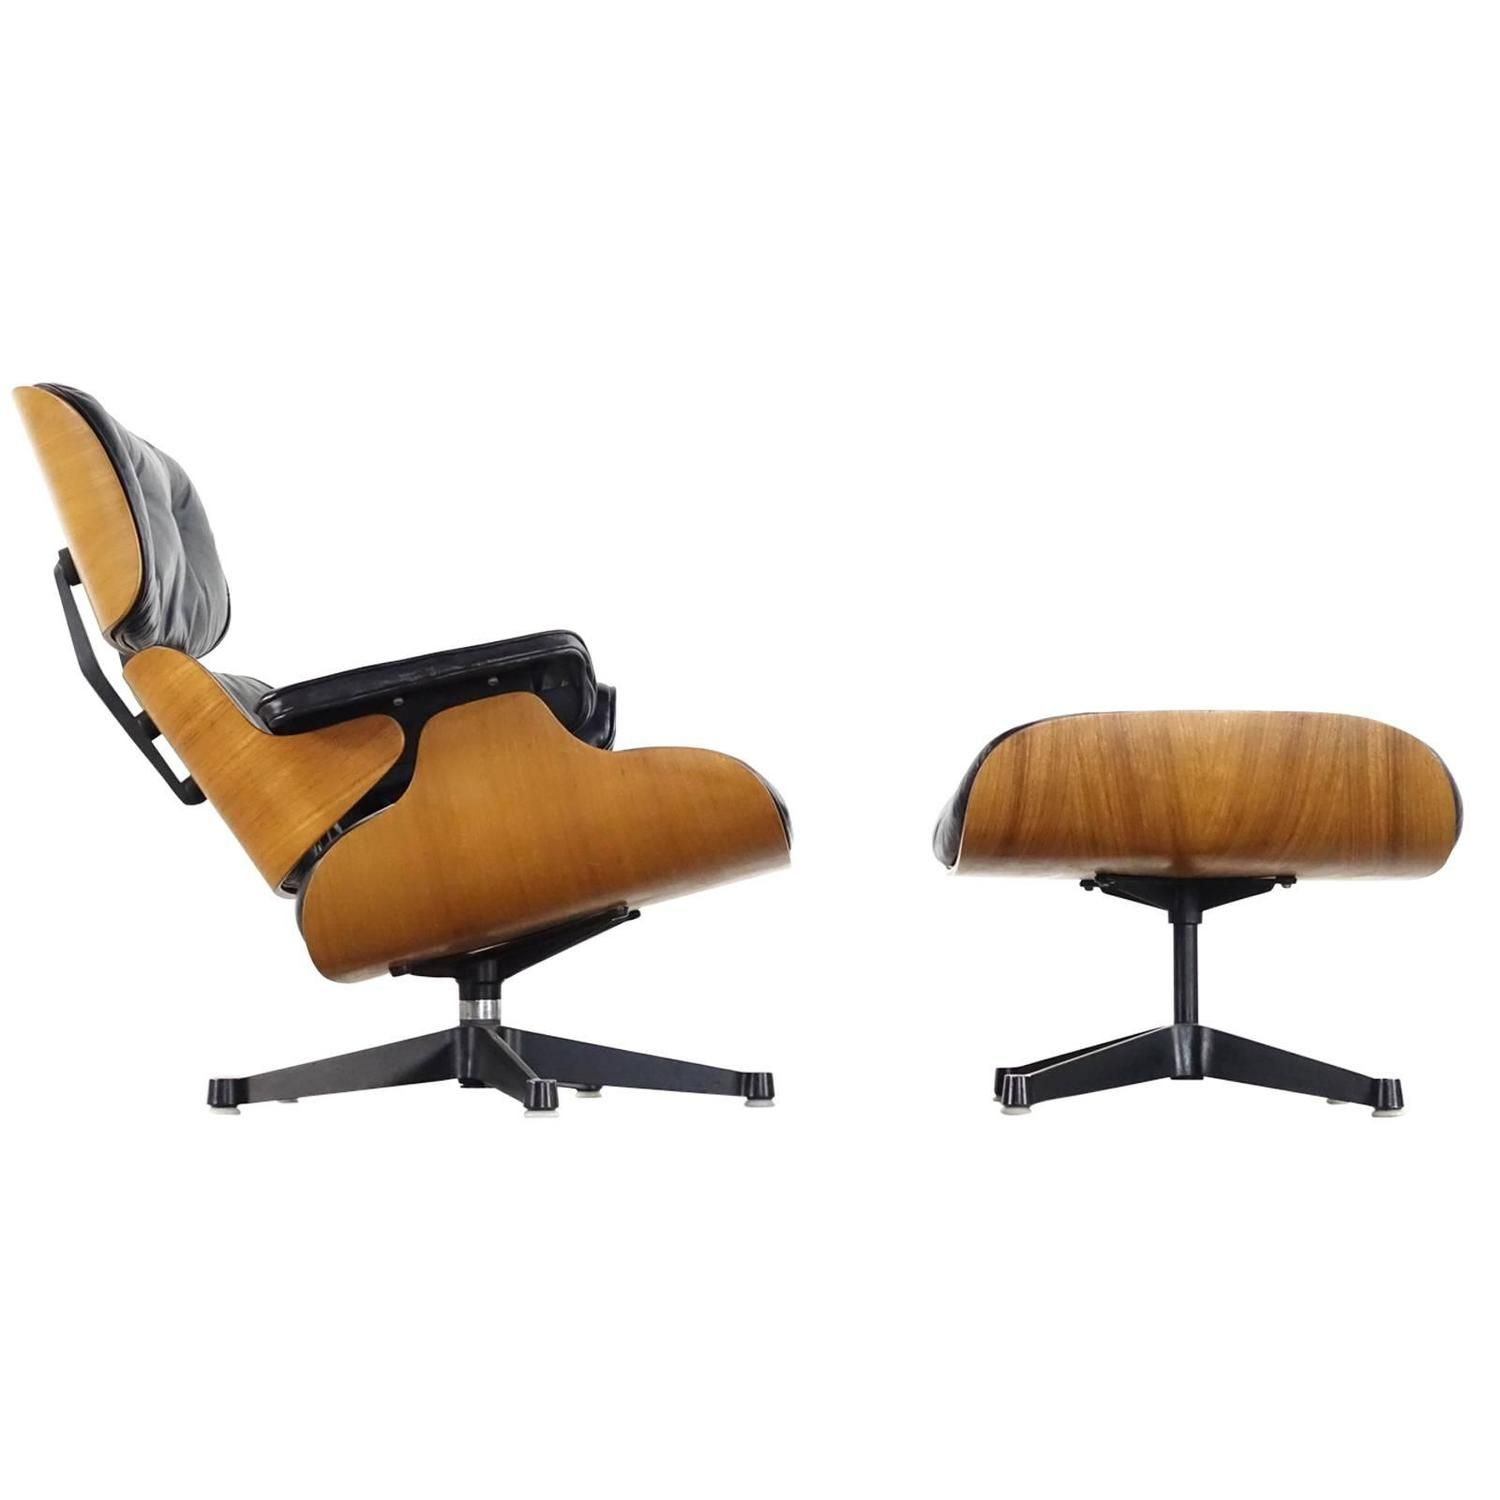 Very Early Charles & Ray Eames Lounge Chair from Contura 1957 1965